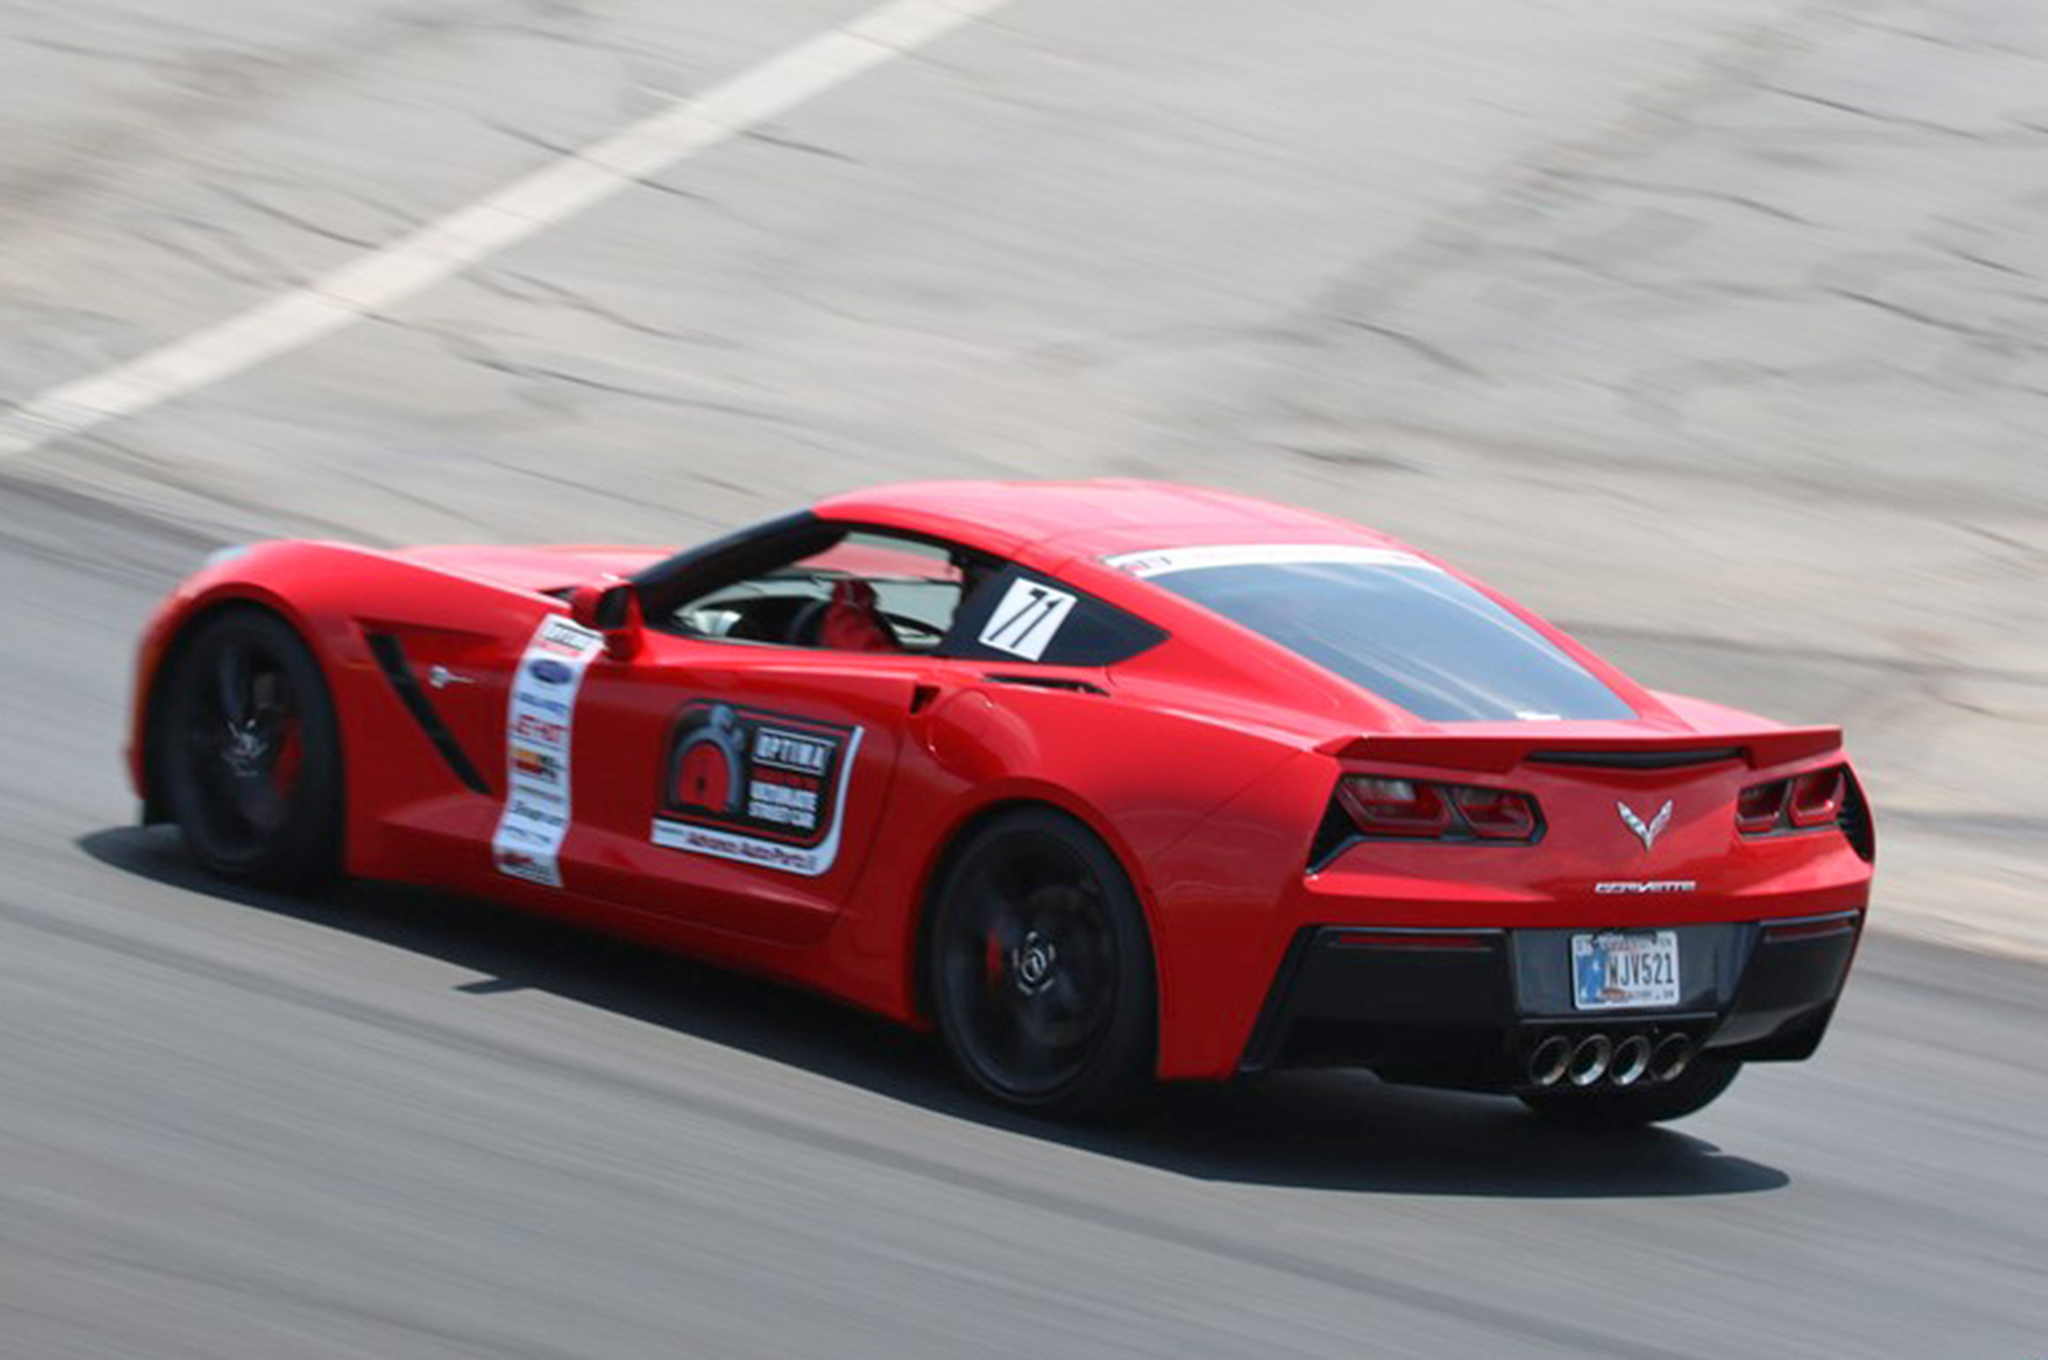 Hugh Bate and three other import owners topped Chris Neal's 2014 Corvette in the GTS class, but his Top Five finish in Charlotte propelled him into First Place in GTS points and Fourth Place overall in the season-long points chase. The top finishers in each of four classes who have not previously qualified for Las Vegas, along with the next 11 competitors, regardless of class, will all get invites to SEMA and the OUSCI, so Neal's performance is a big deal.